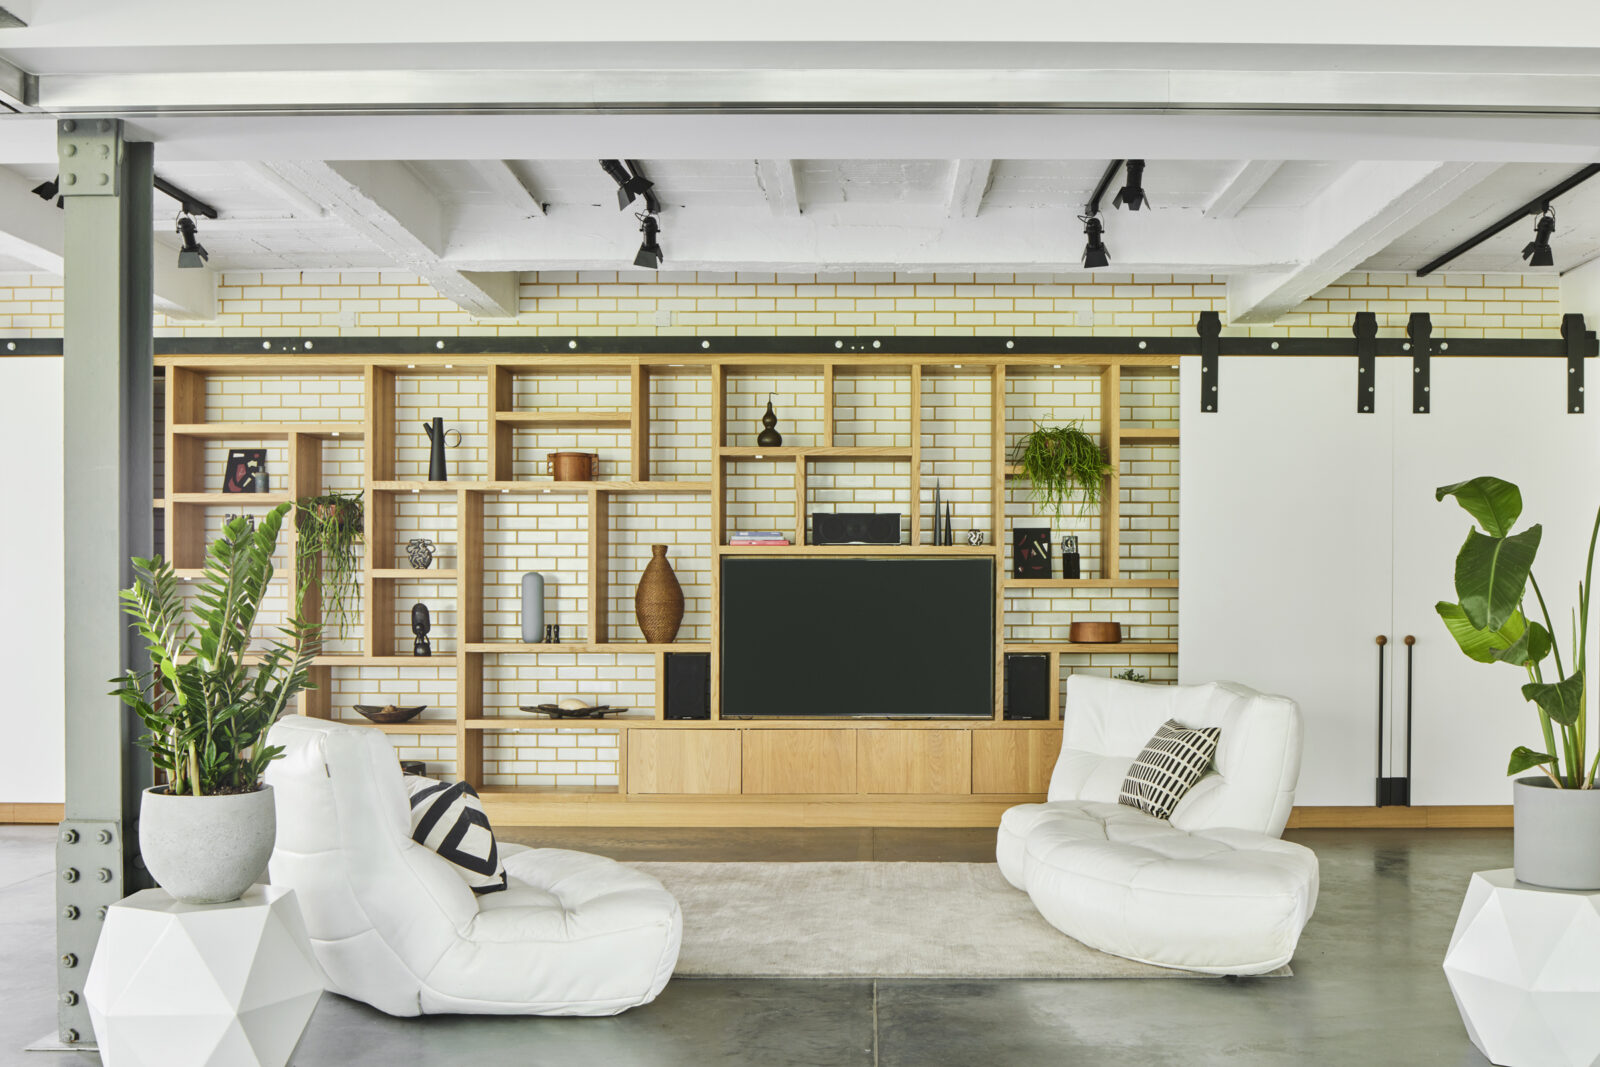 Cabinetry is custom-designed for the space